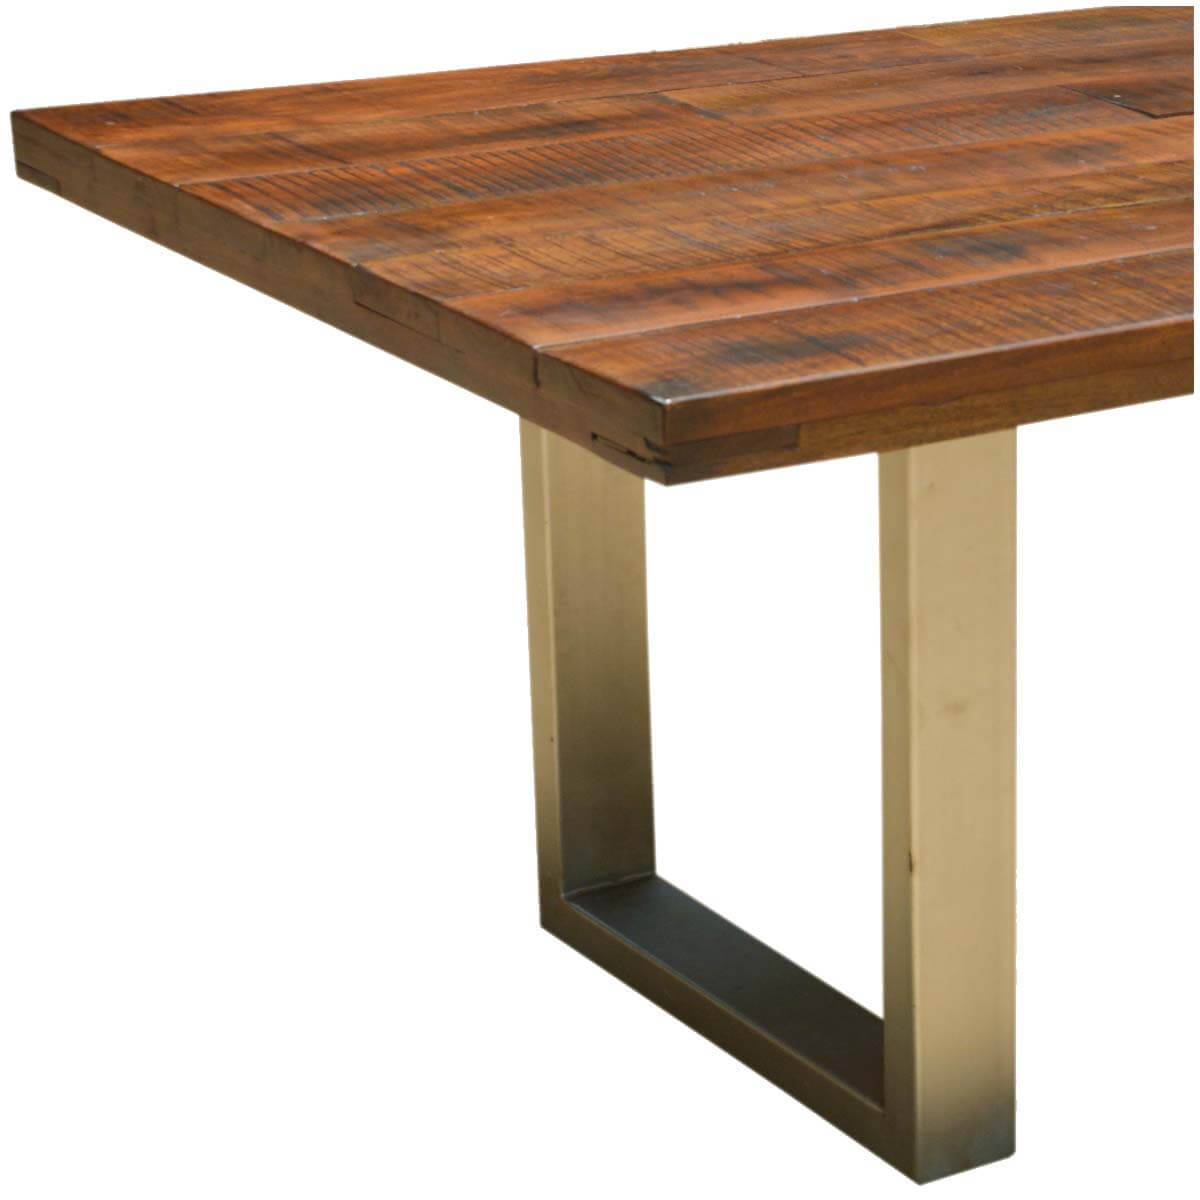 Acacia Dining Table Acacia Lyon Large Contemporary Rustic Solid Acacia Wood